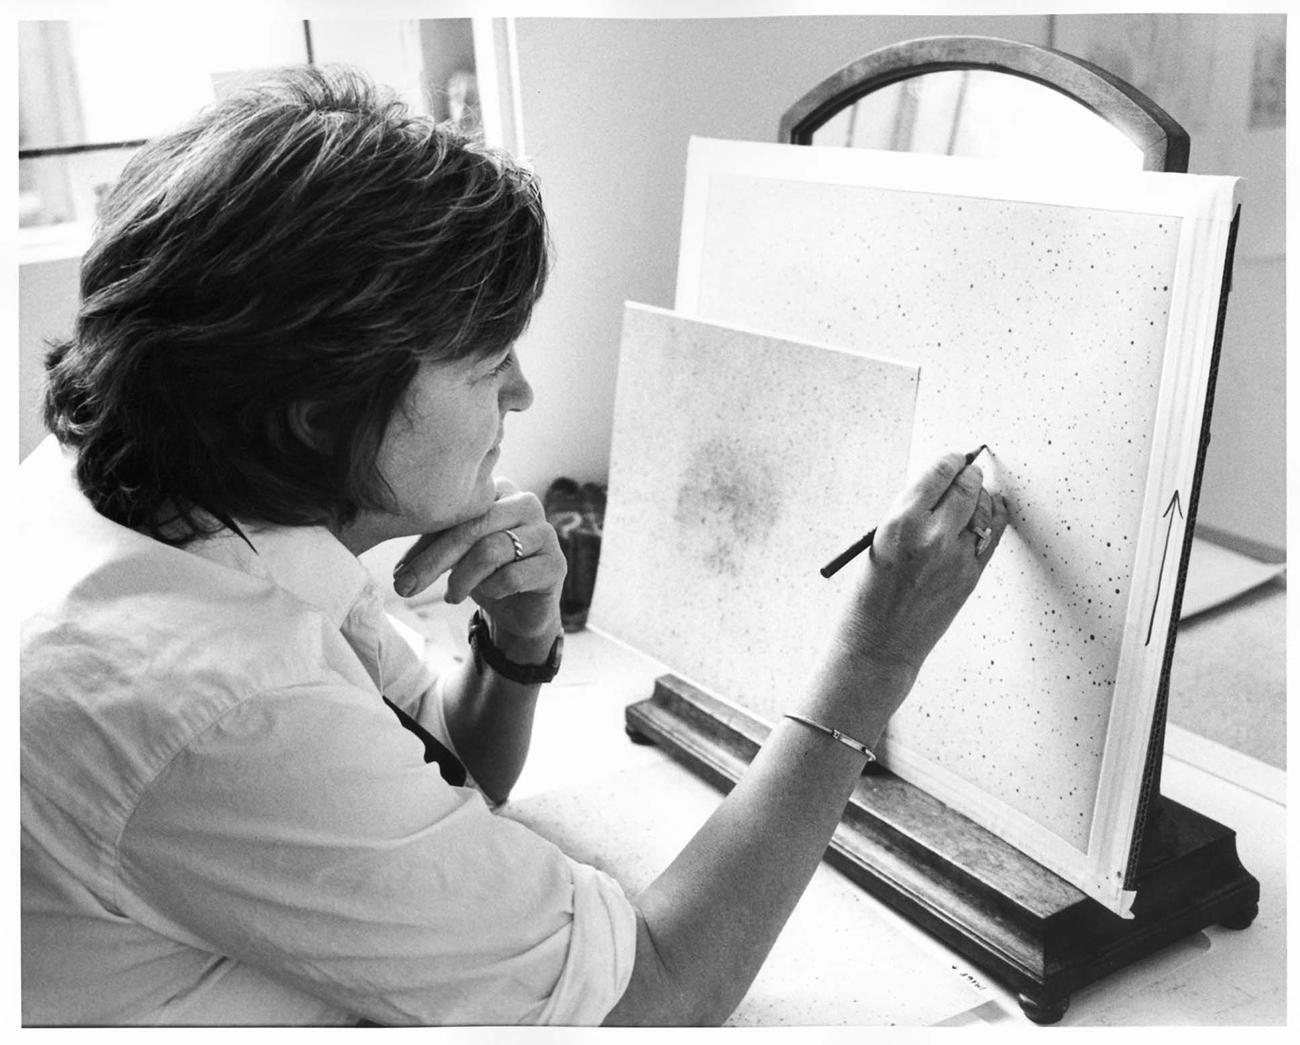 Artist Vija Celmins faces an easel and marks paper with a pencil